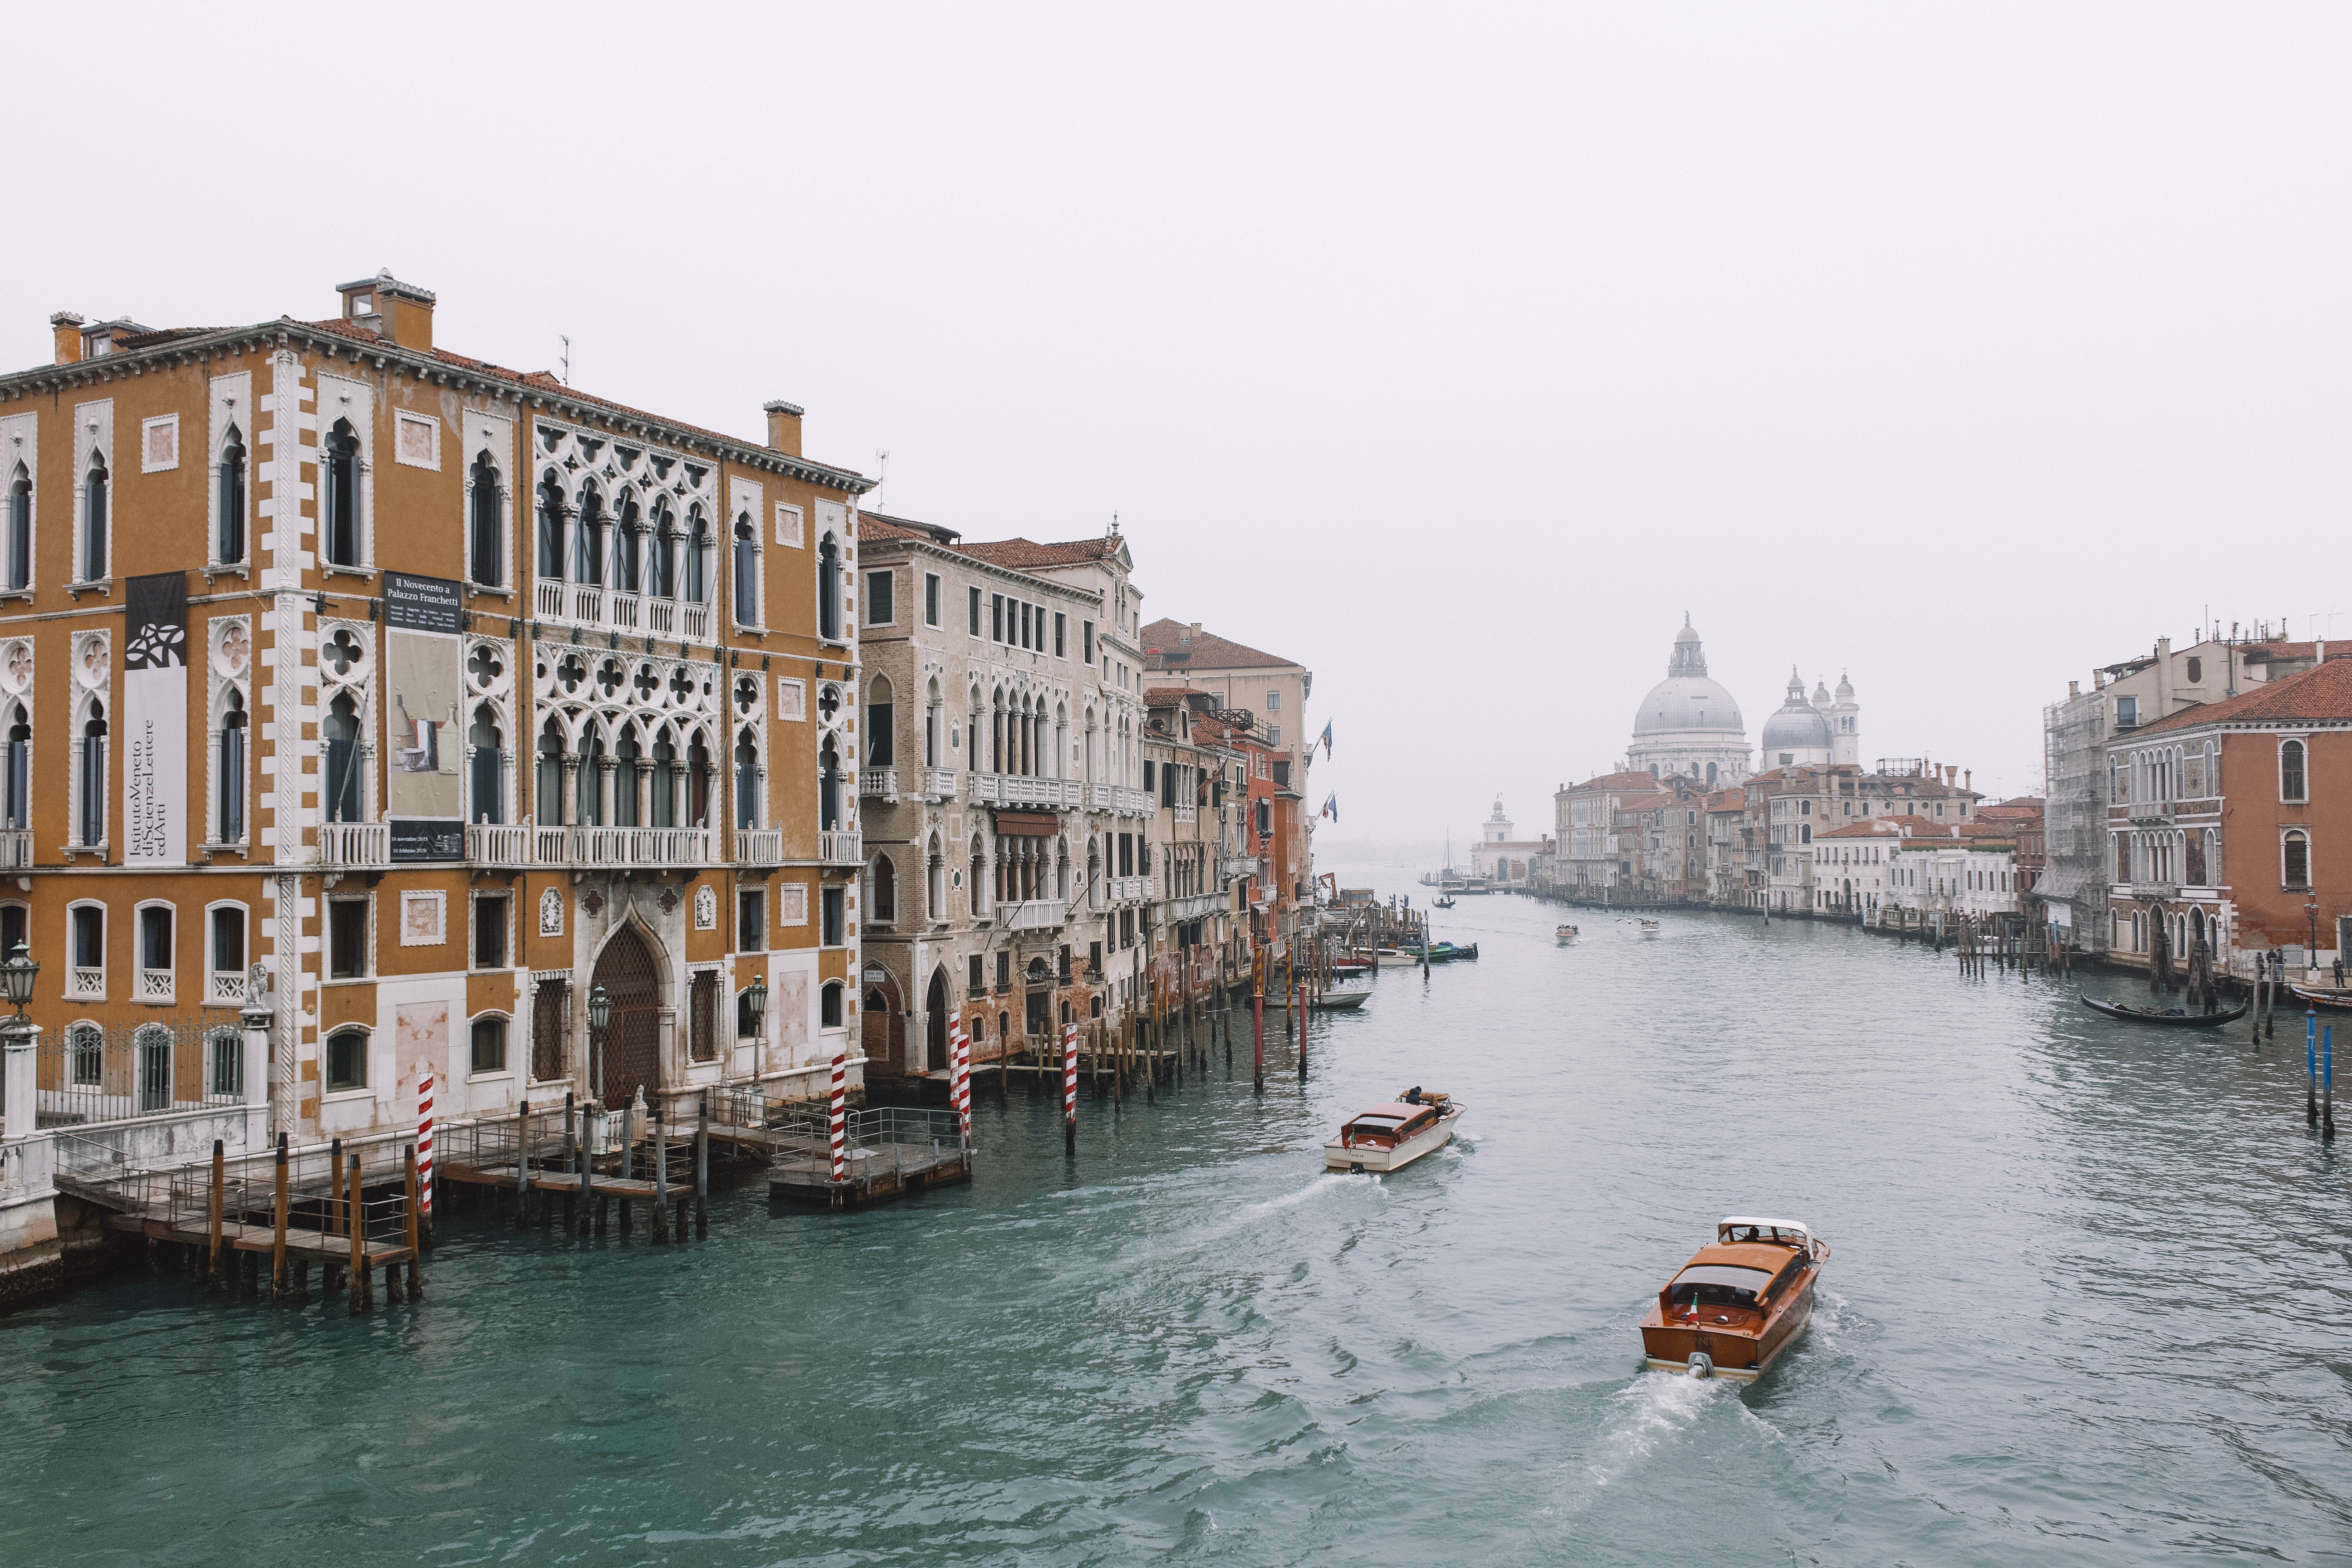 View from the Ponte dell'Accademia